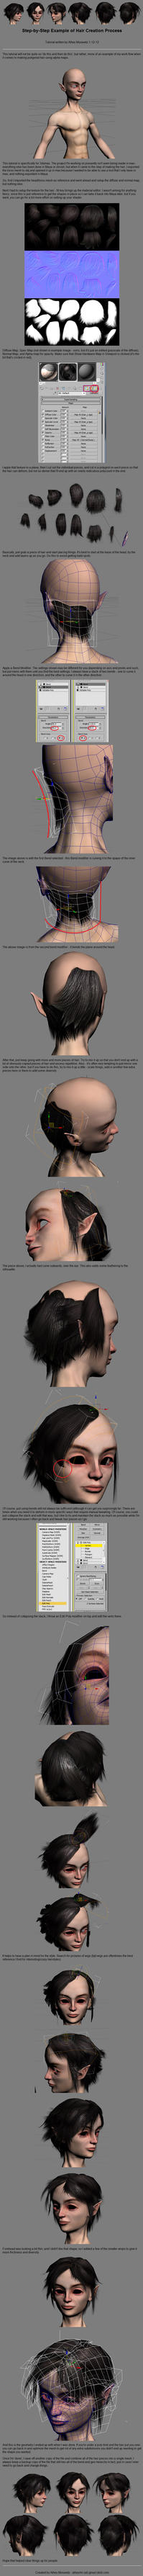 Polygon Hair Tutorial - 3dsMax by Athey